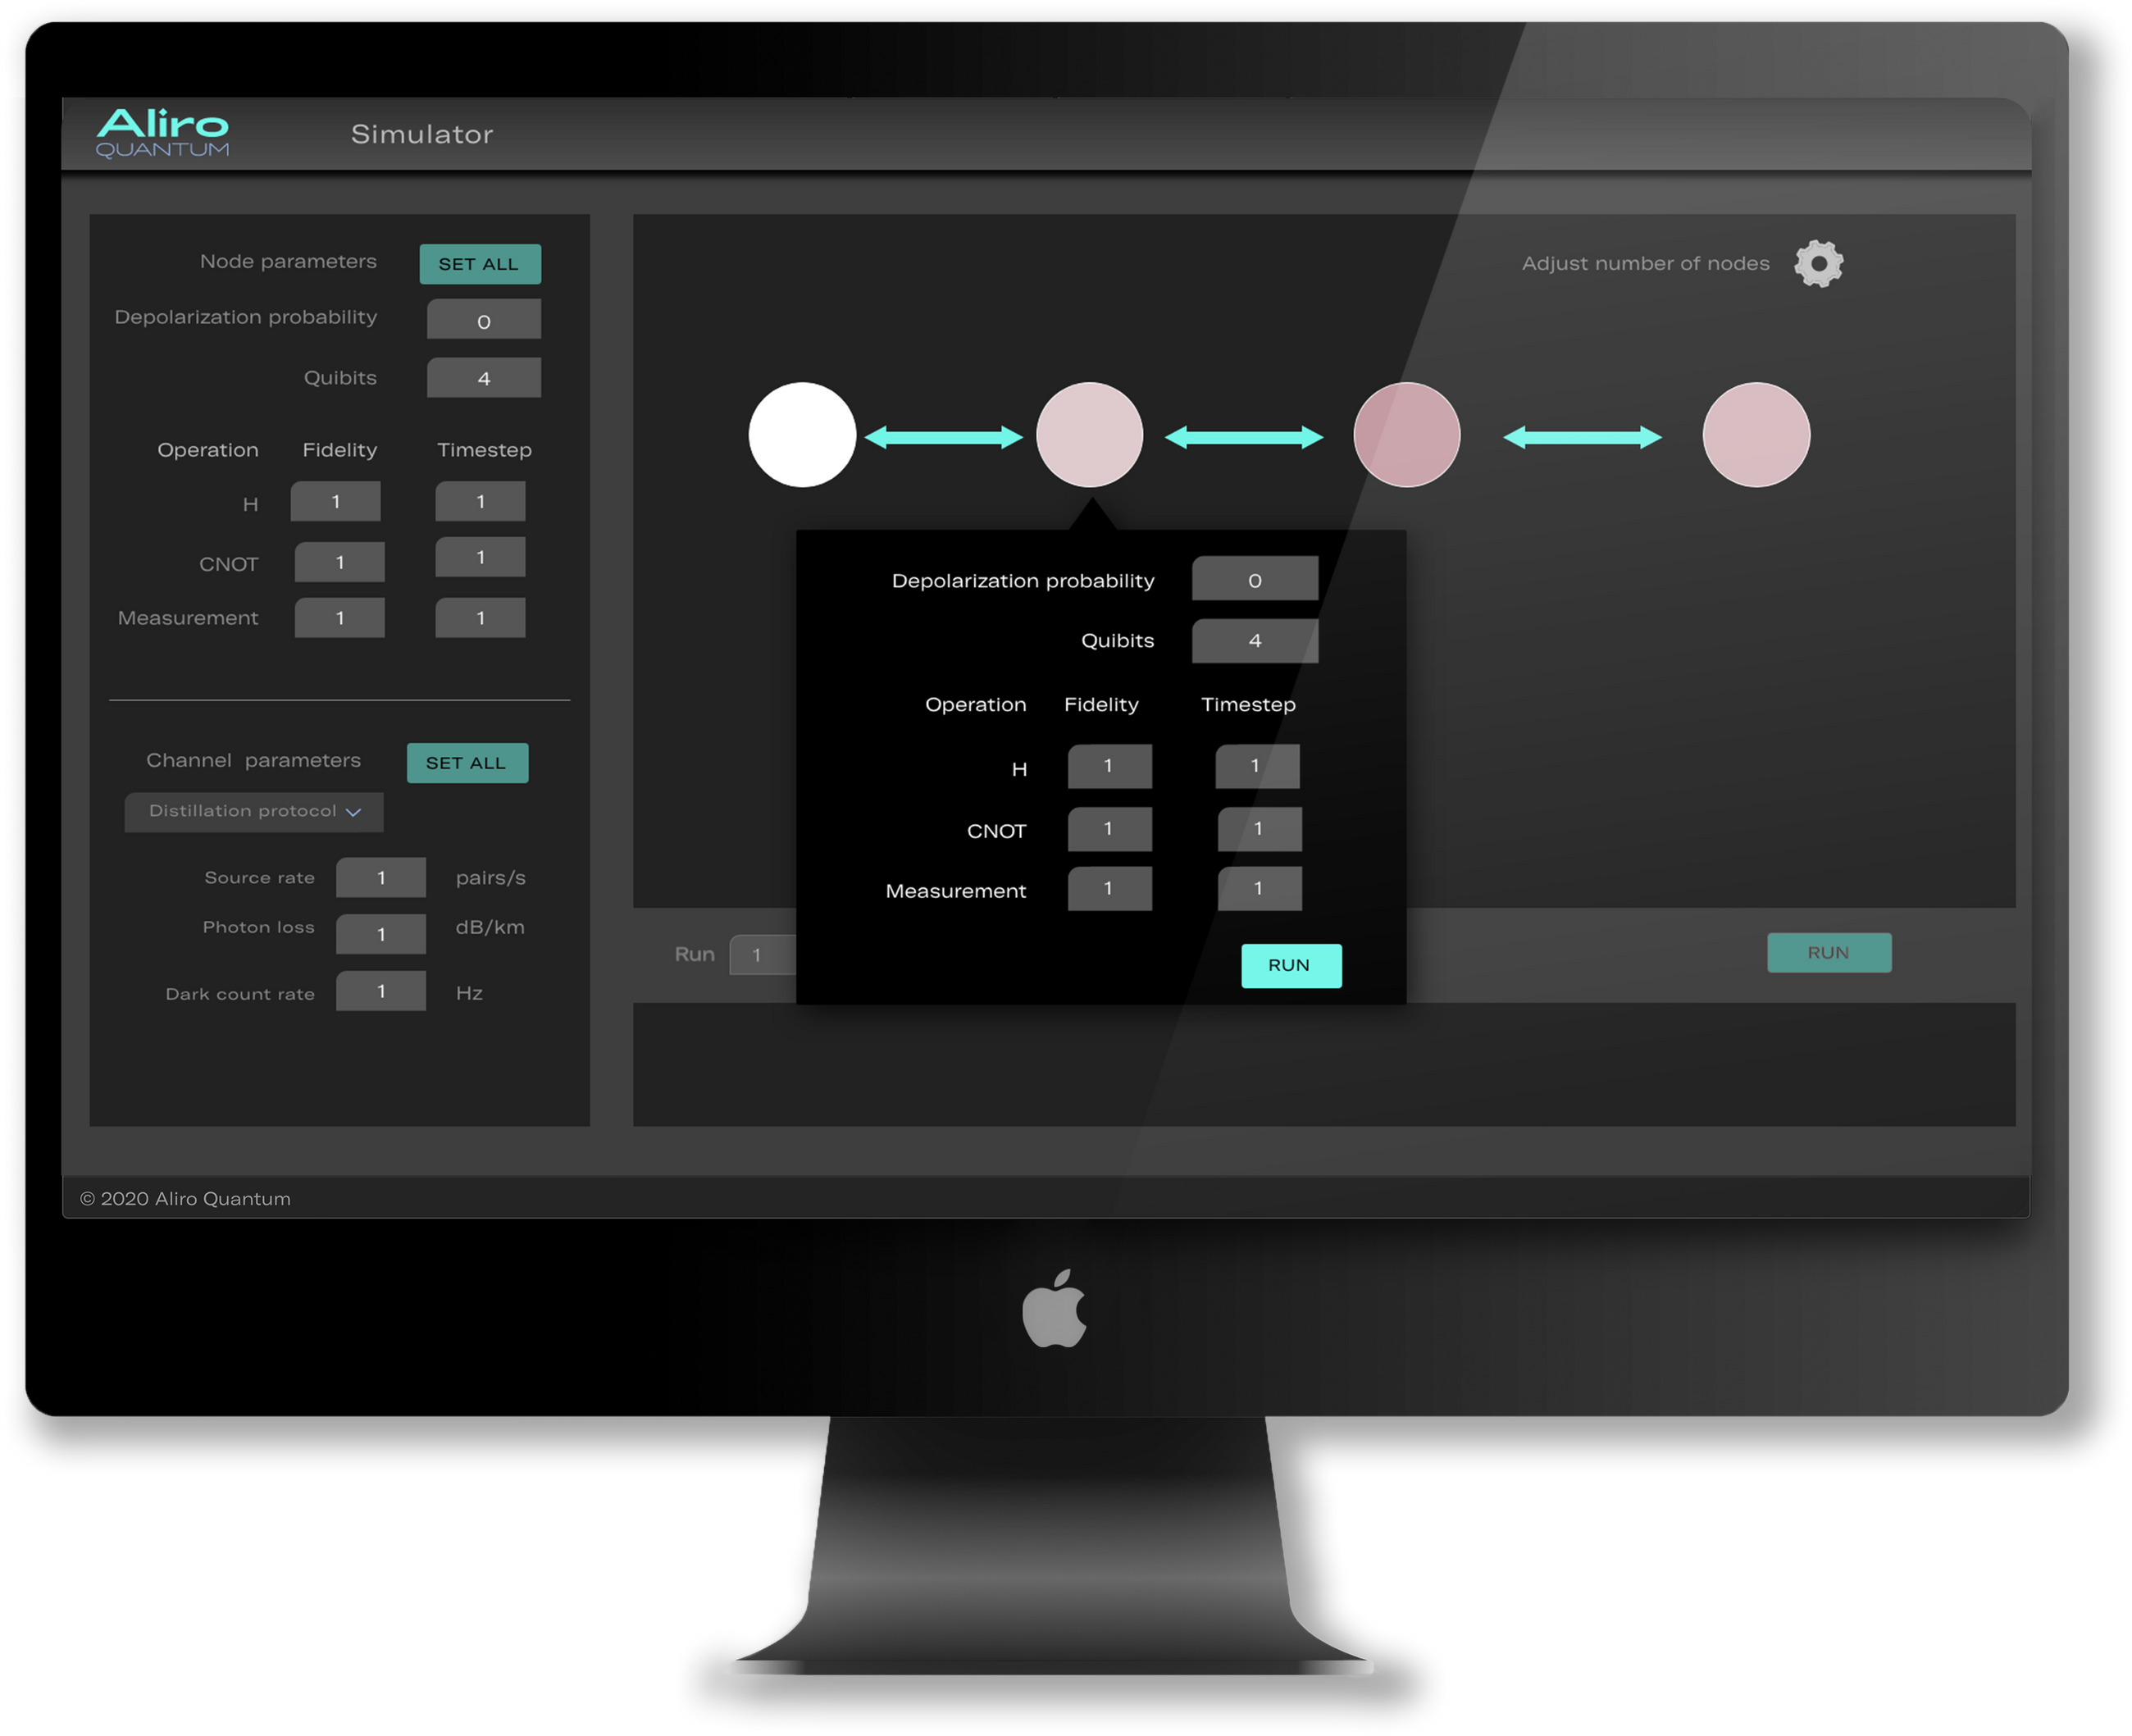 Aliro Q.Network graphical interface featuring web-based network design platform